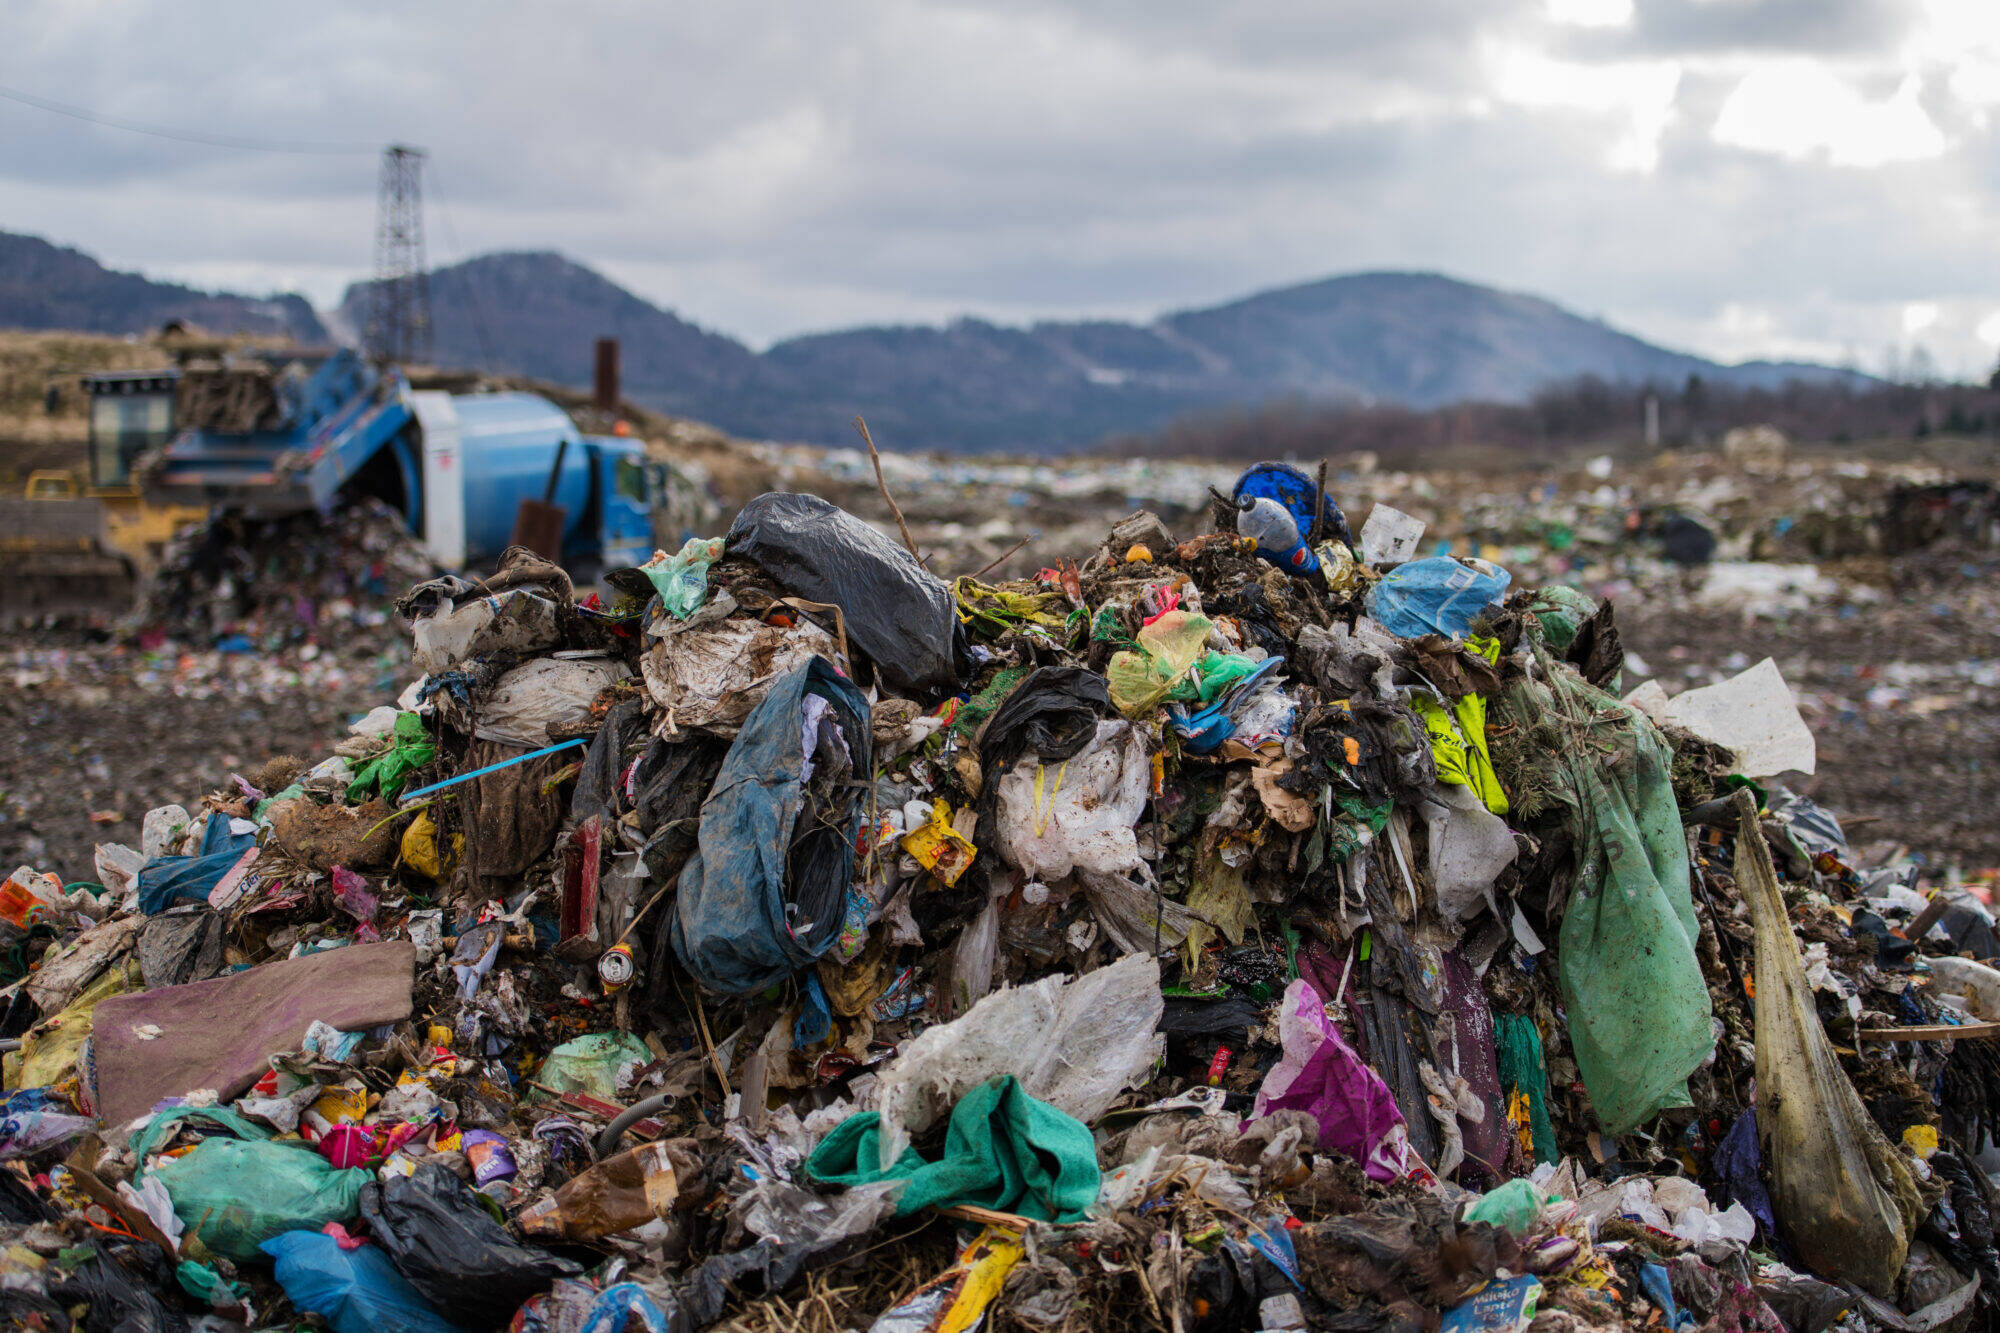 Waste heaps on landfill, environmental concept. Copy space.